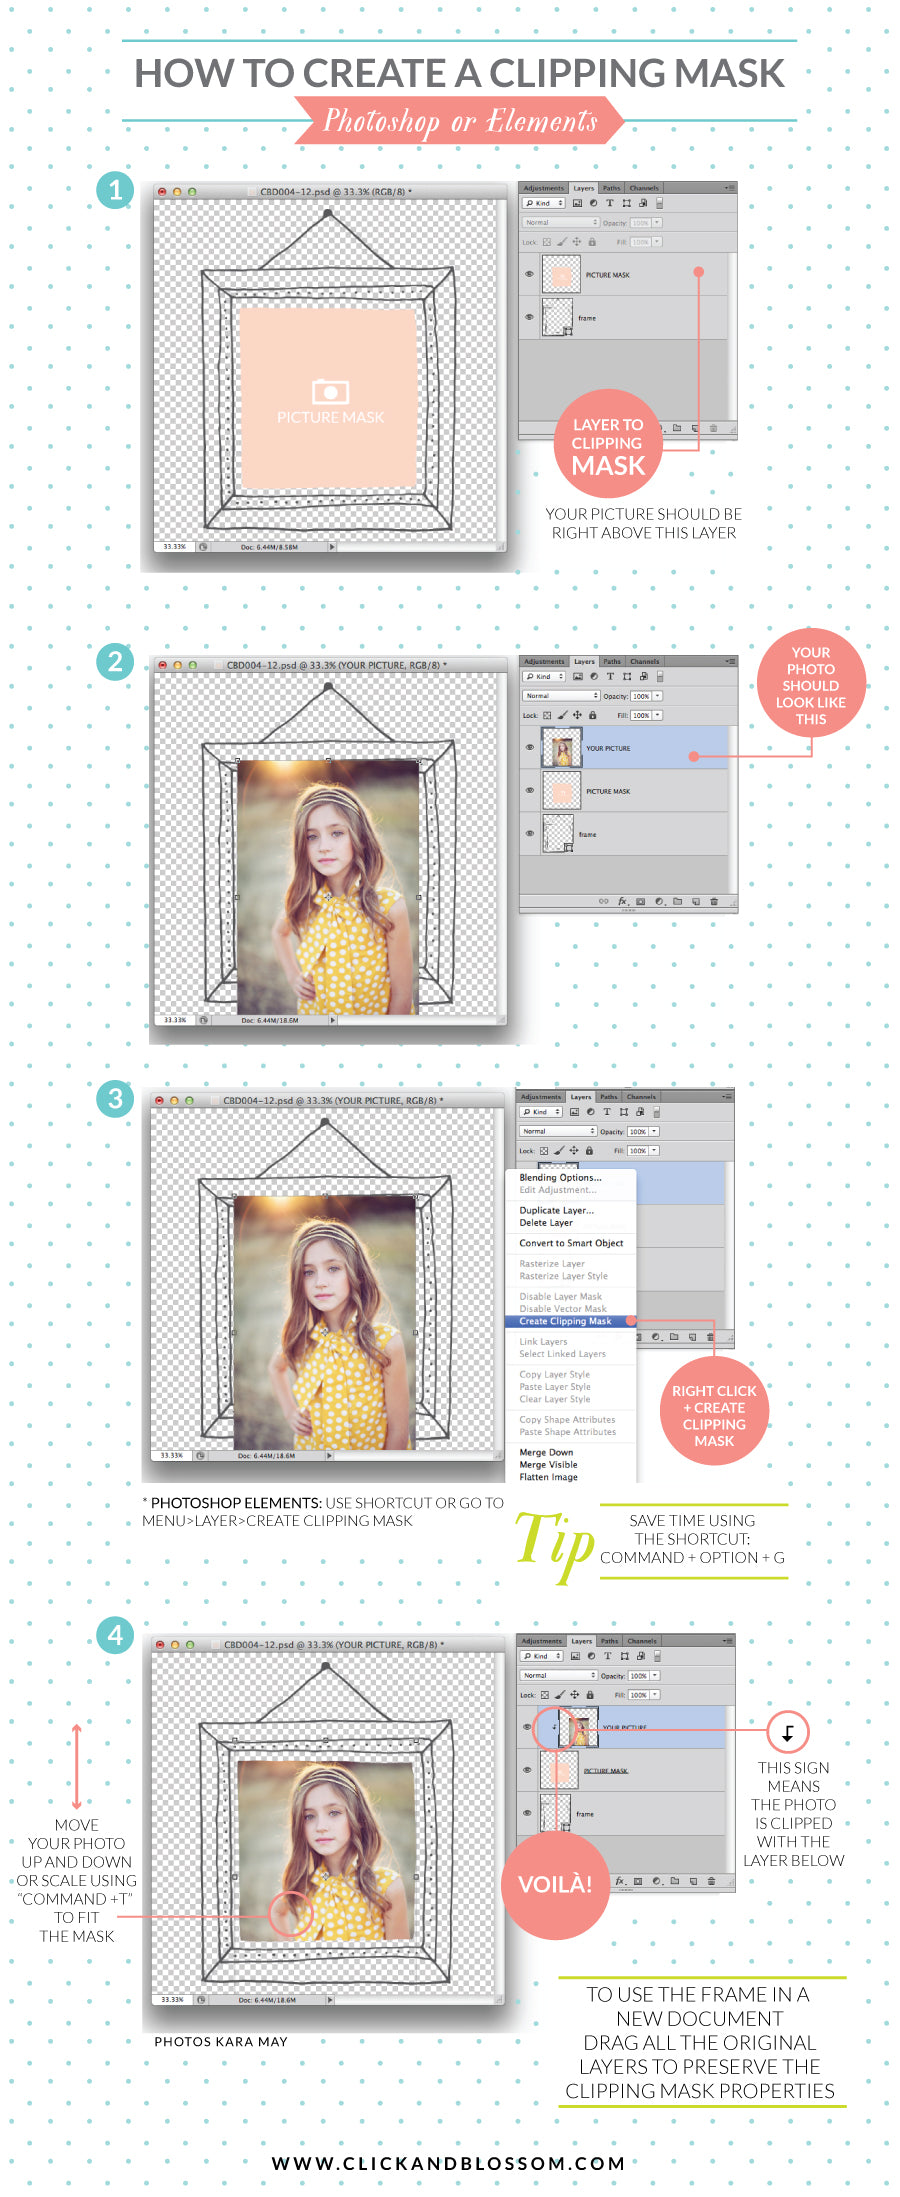 How to create a clipping mask on photoshop or elements